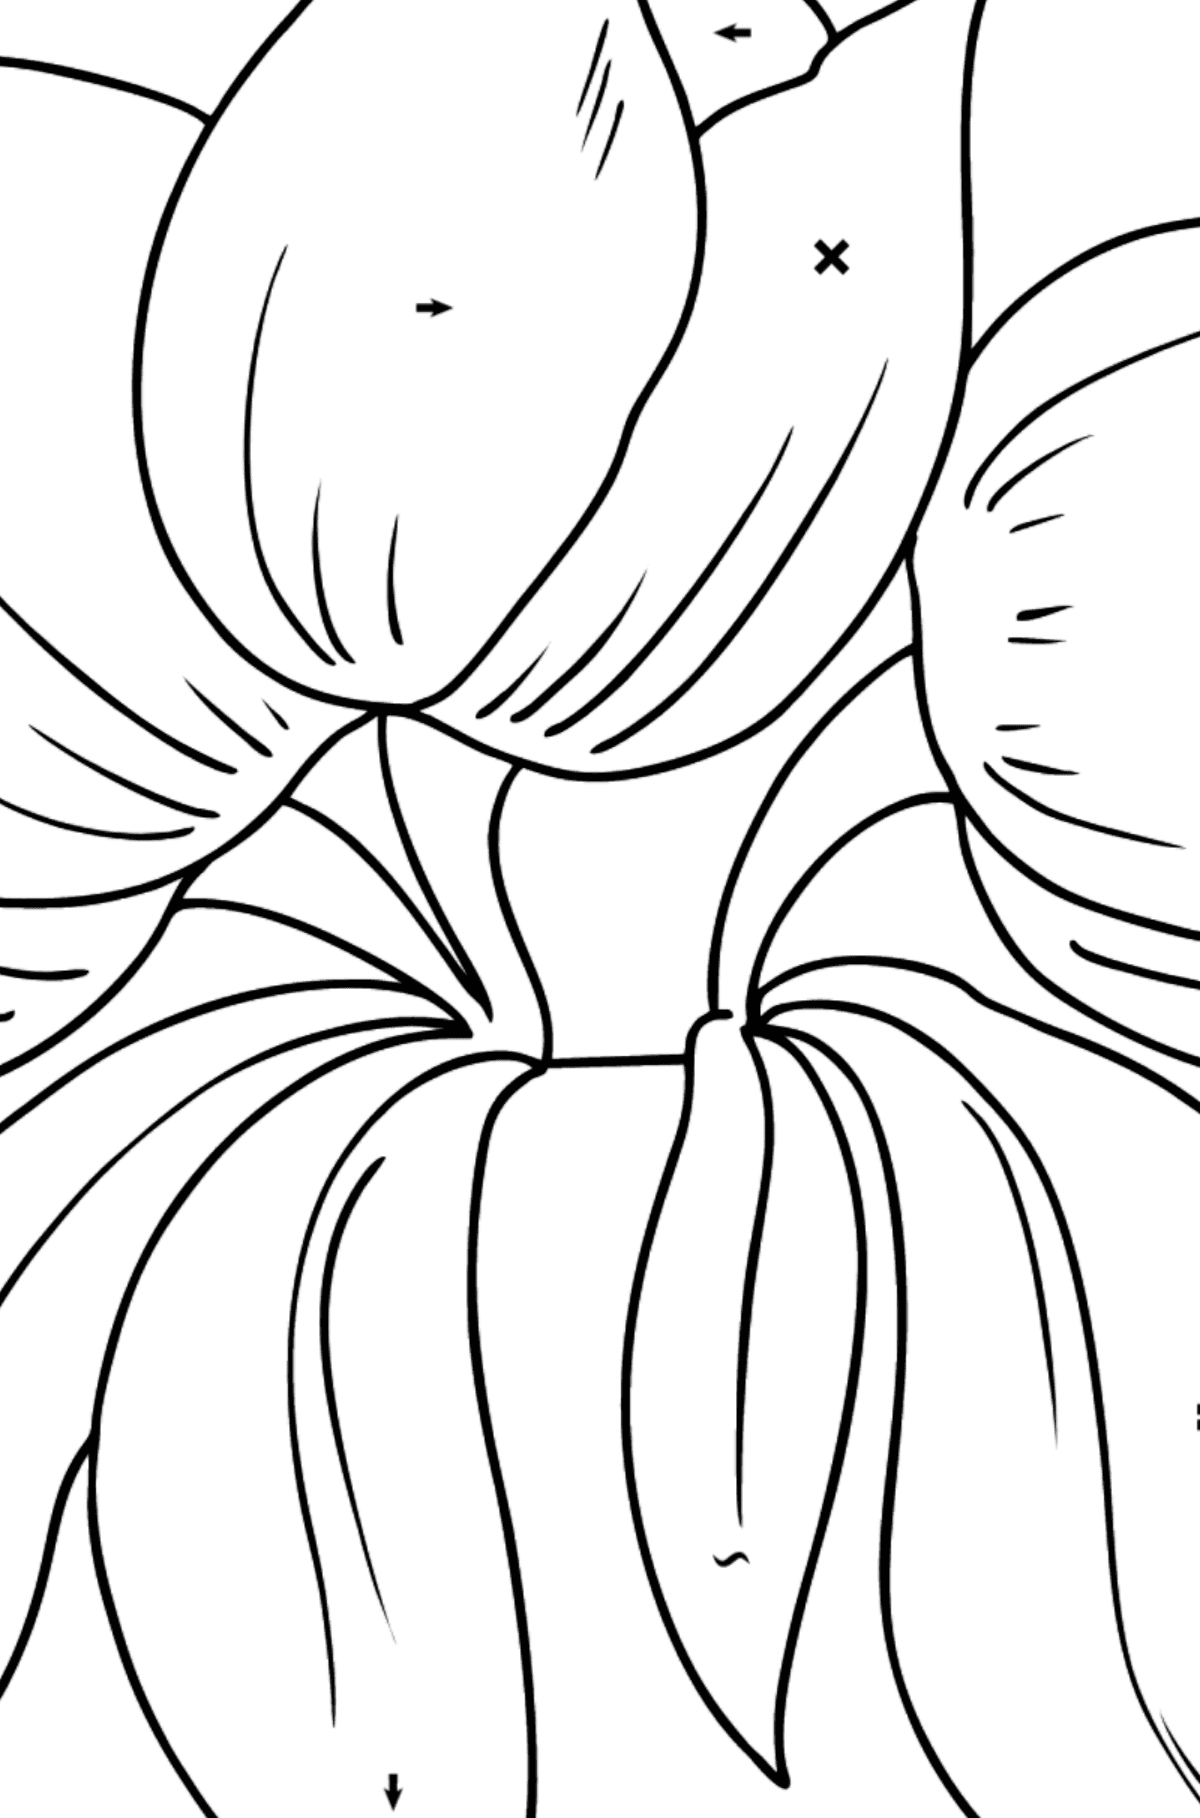 Flower Coloring Page - Tulips - Coloring by Symbols for Kids